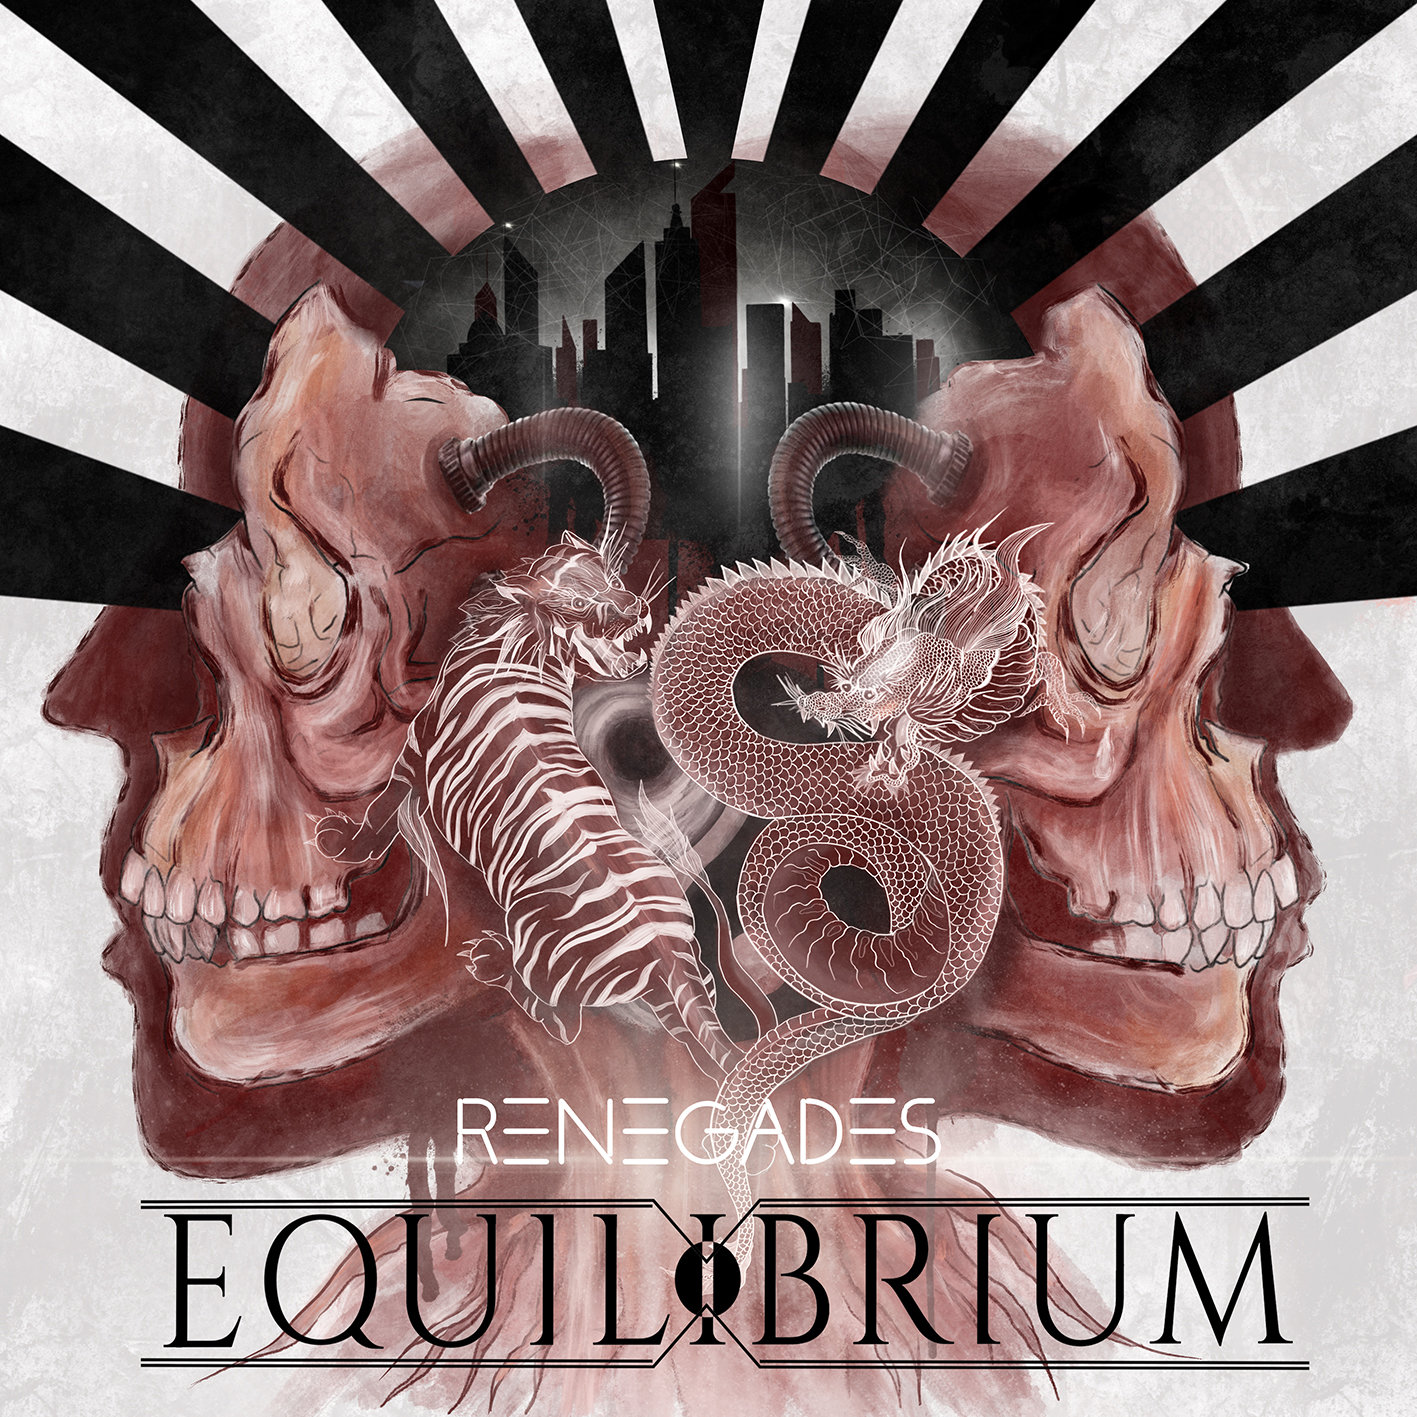 euqilibrium-neues-video-zu-renegade-tour-ankuendigung